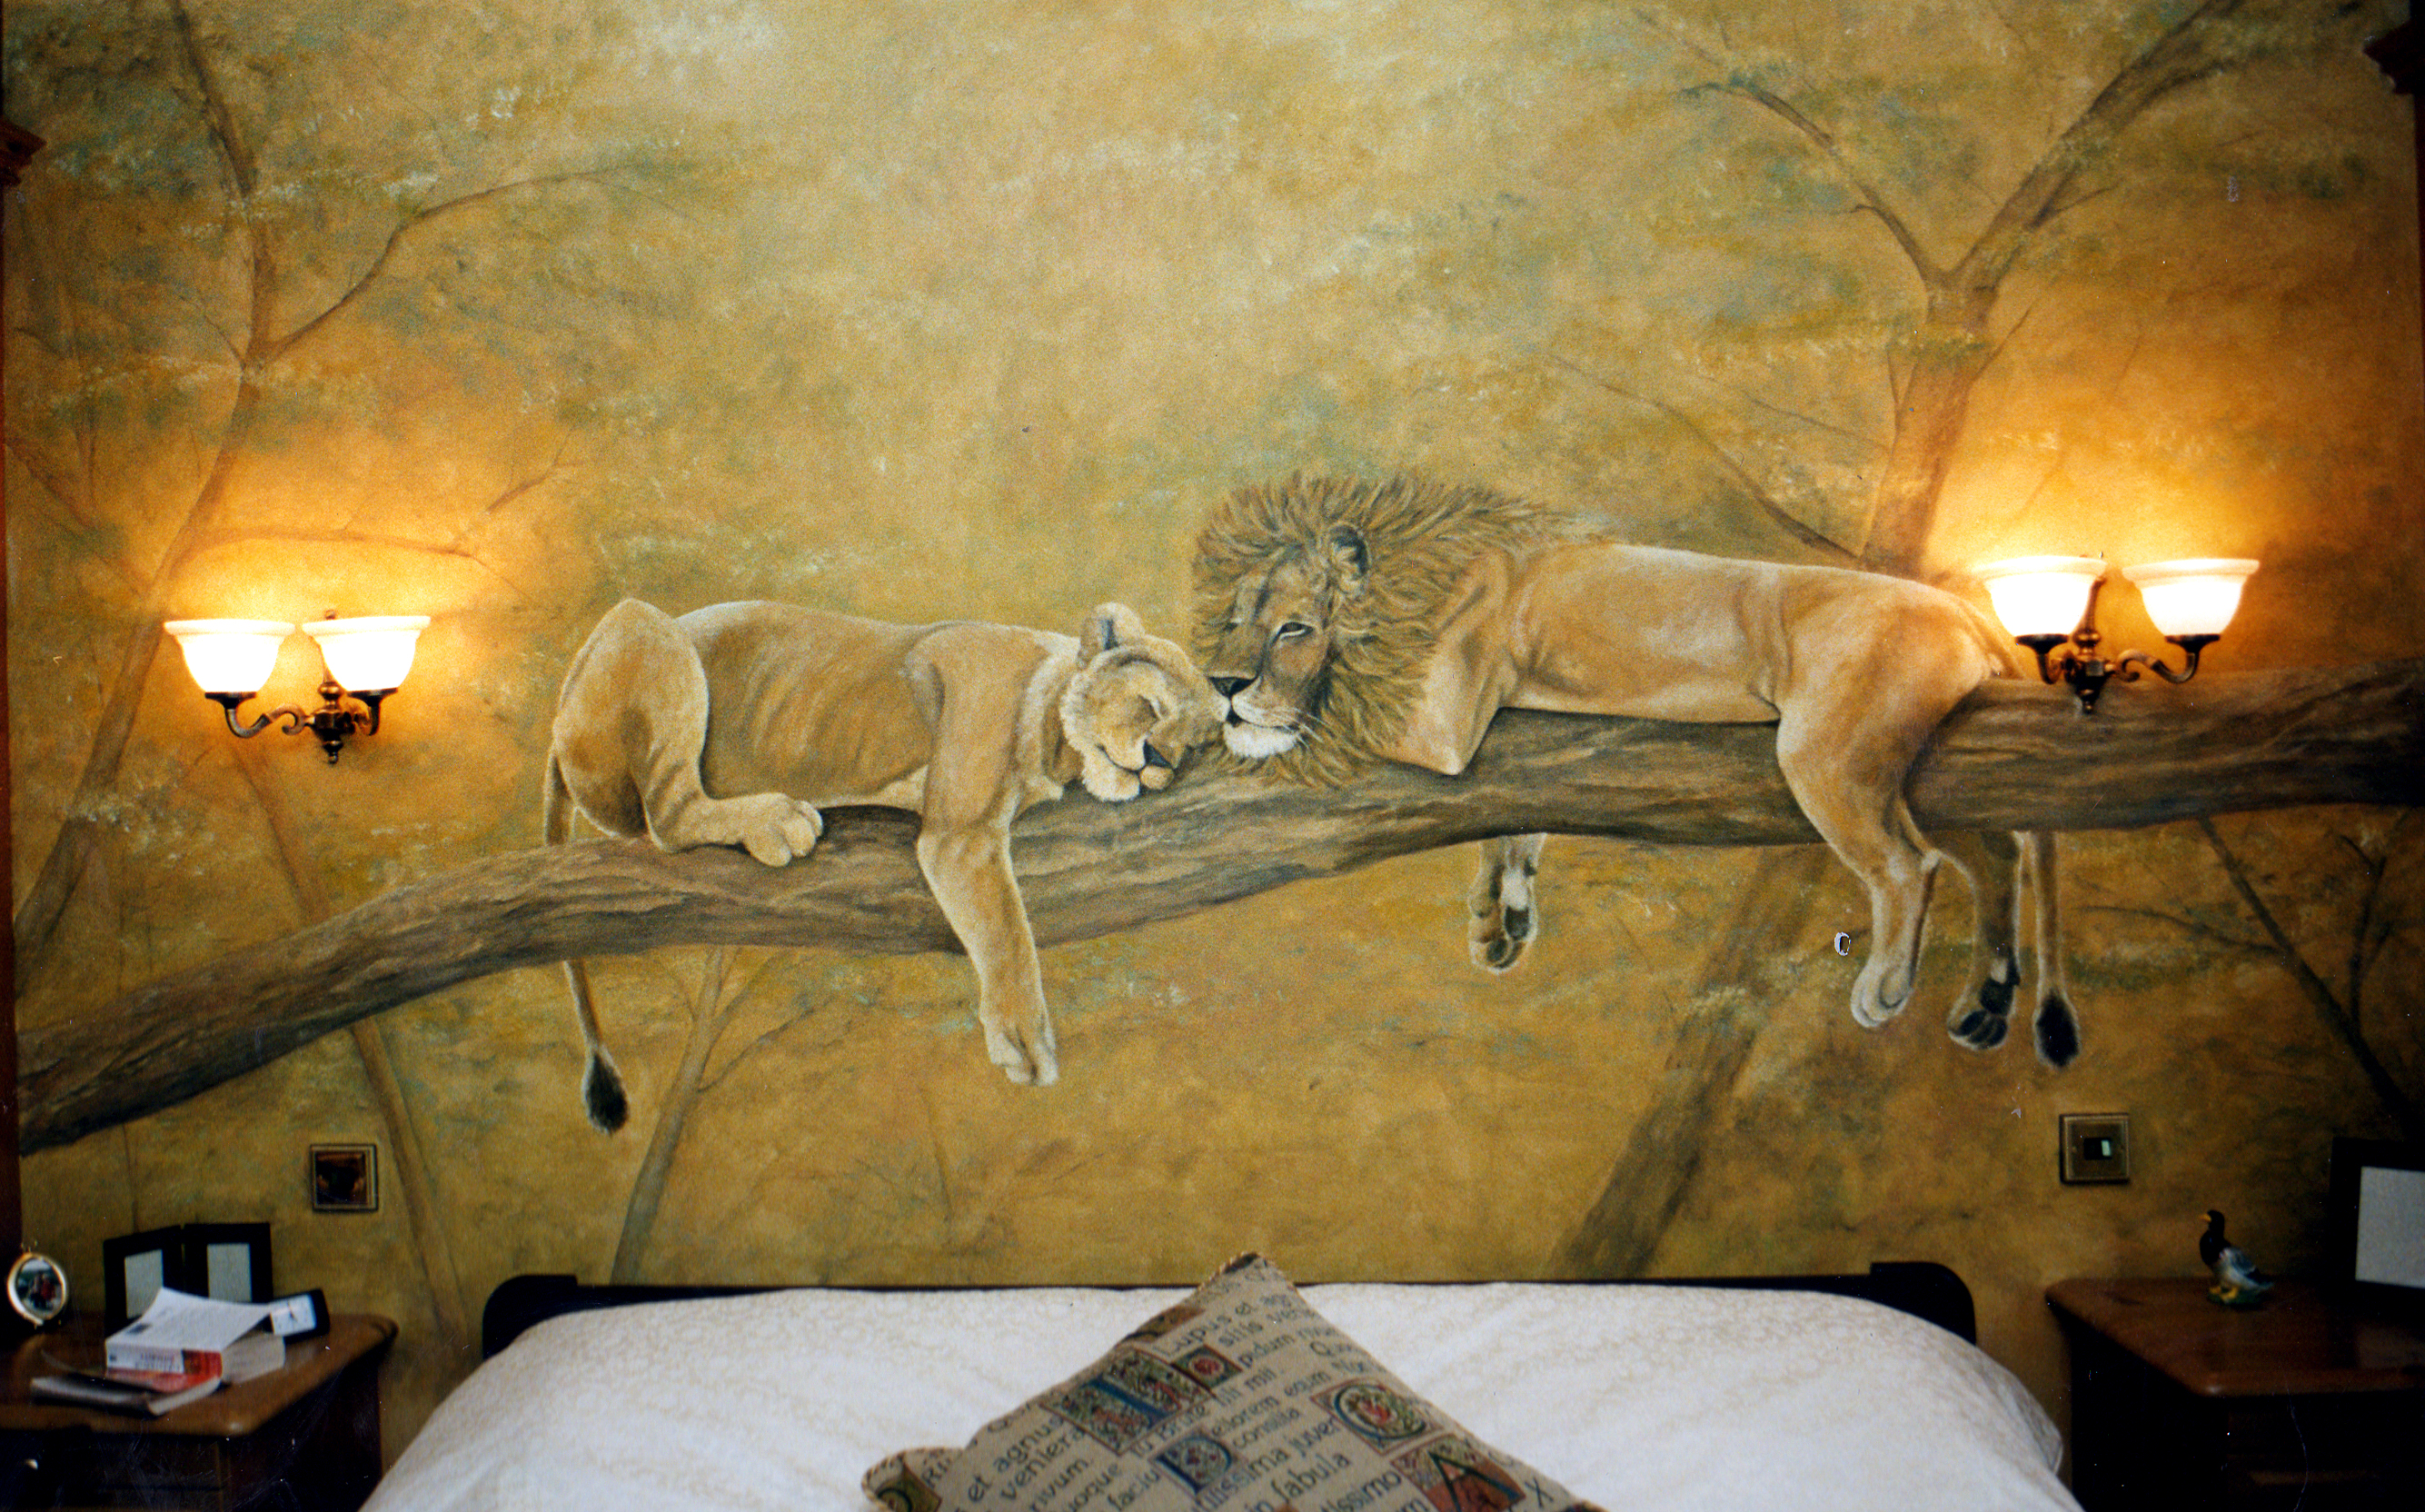 Decoration By Design Sleeping Lions - Bedroom Wall Decoration